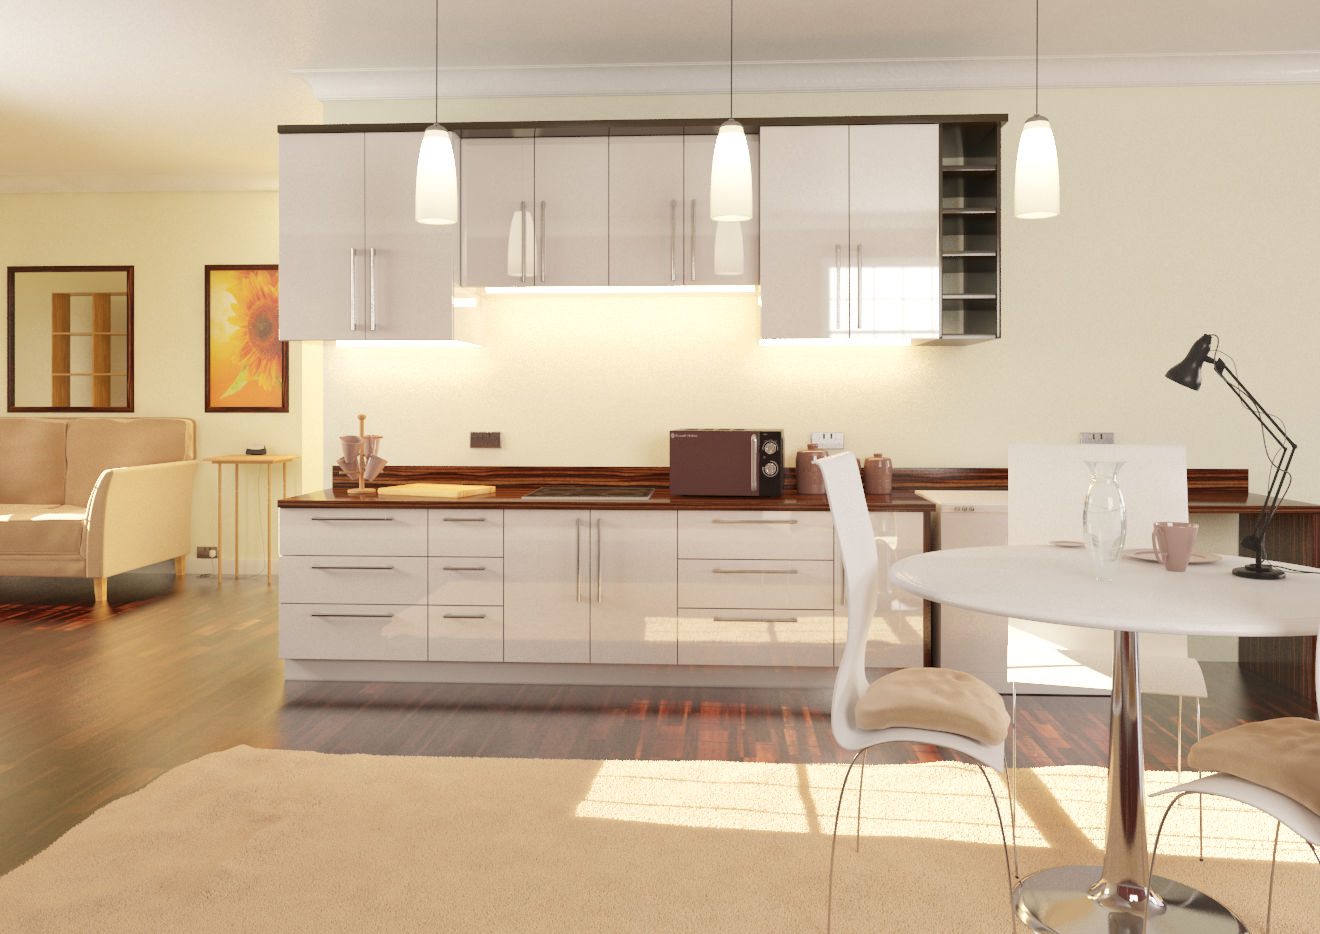 Realistic interior rendering issues vray 3ds max 2016 - 3ds max vray render settings interior ...